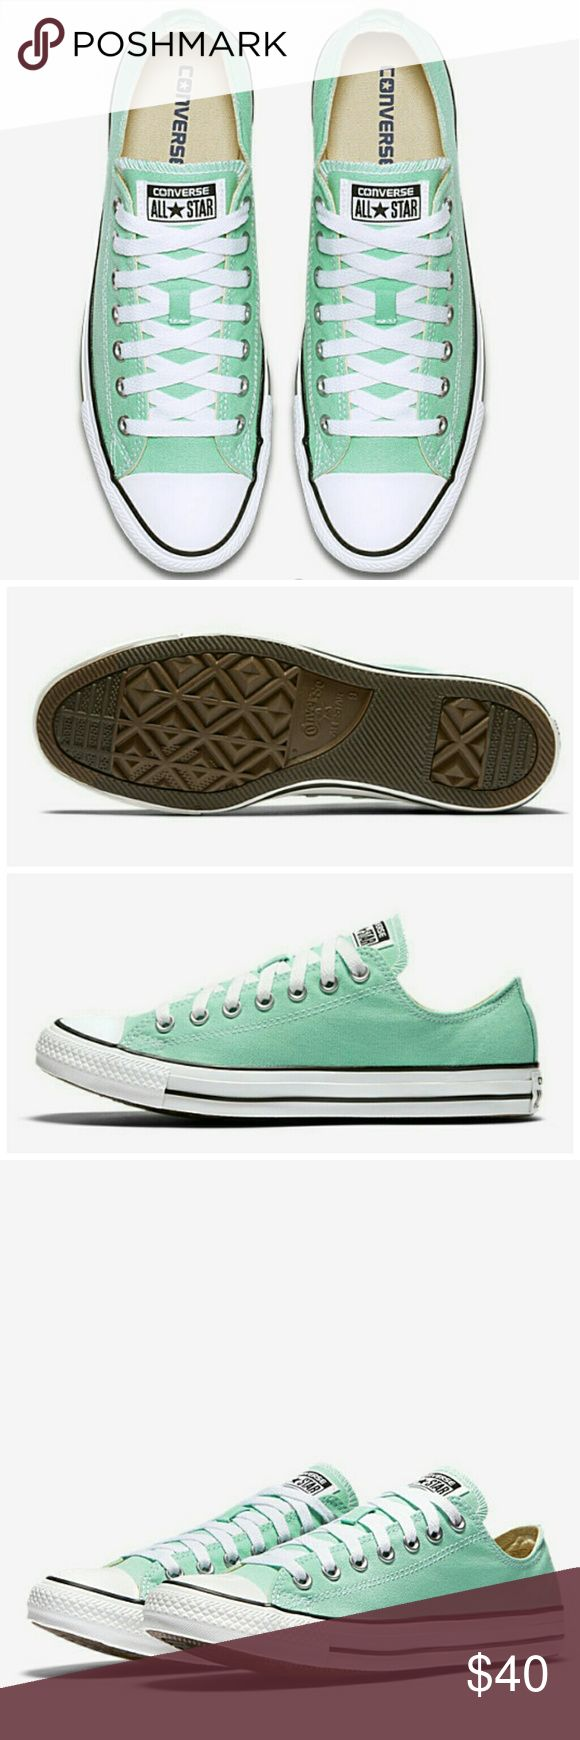 🆕Unisex Converse All Star Mint Green New in Box NWT Converse Chuck Taylor All Star Seasonal Color Low Top Unisex Shoe. Mint green color. Mens 11.5, Womens 13.5 (see measurement below). Never worn, brand new in box. ℹ Approx 31.3 cm in length (measured across longest part of shoe from toe to heel) ℹ Converse Chuck Taylor usually runs half-size larger so would fit about Mens 11.5 to 12 Converse Shoes